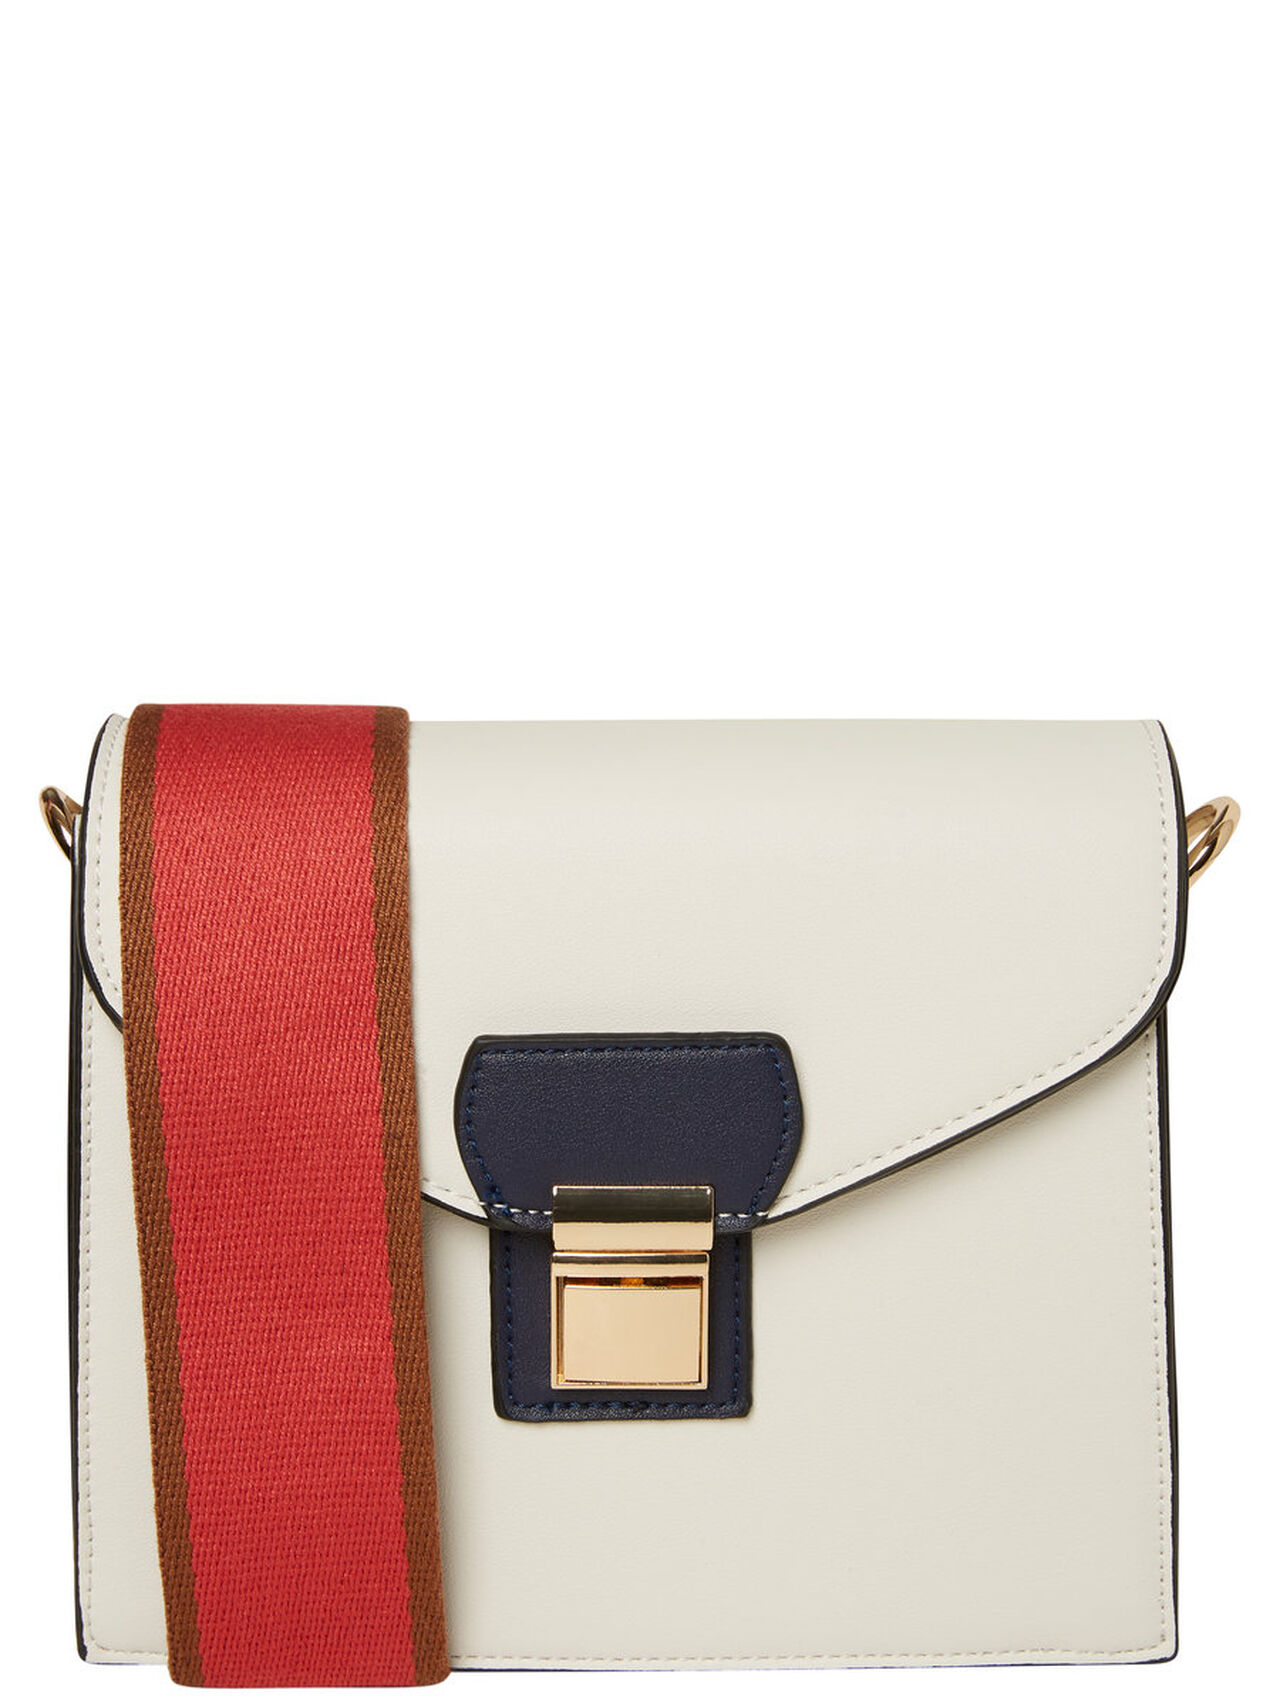 VERO MODA Small Crossbody Bag Women White